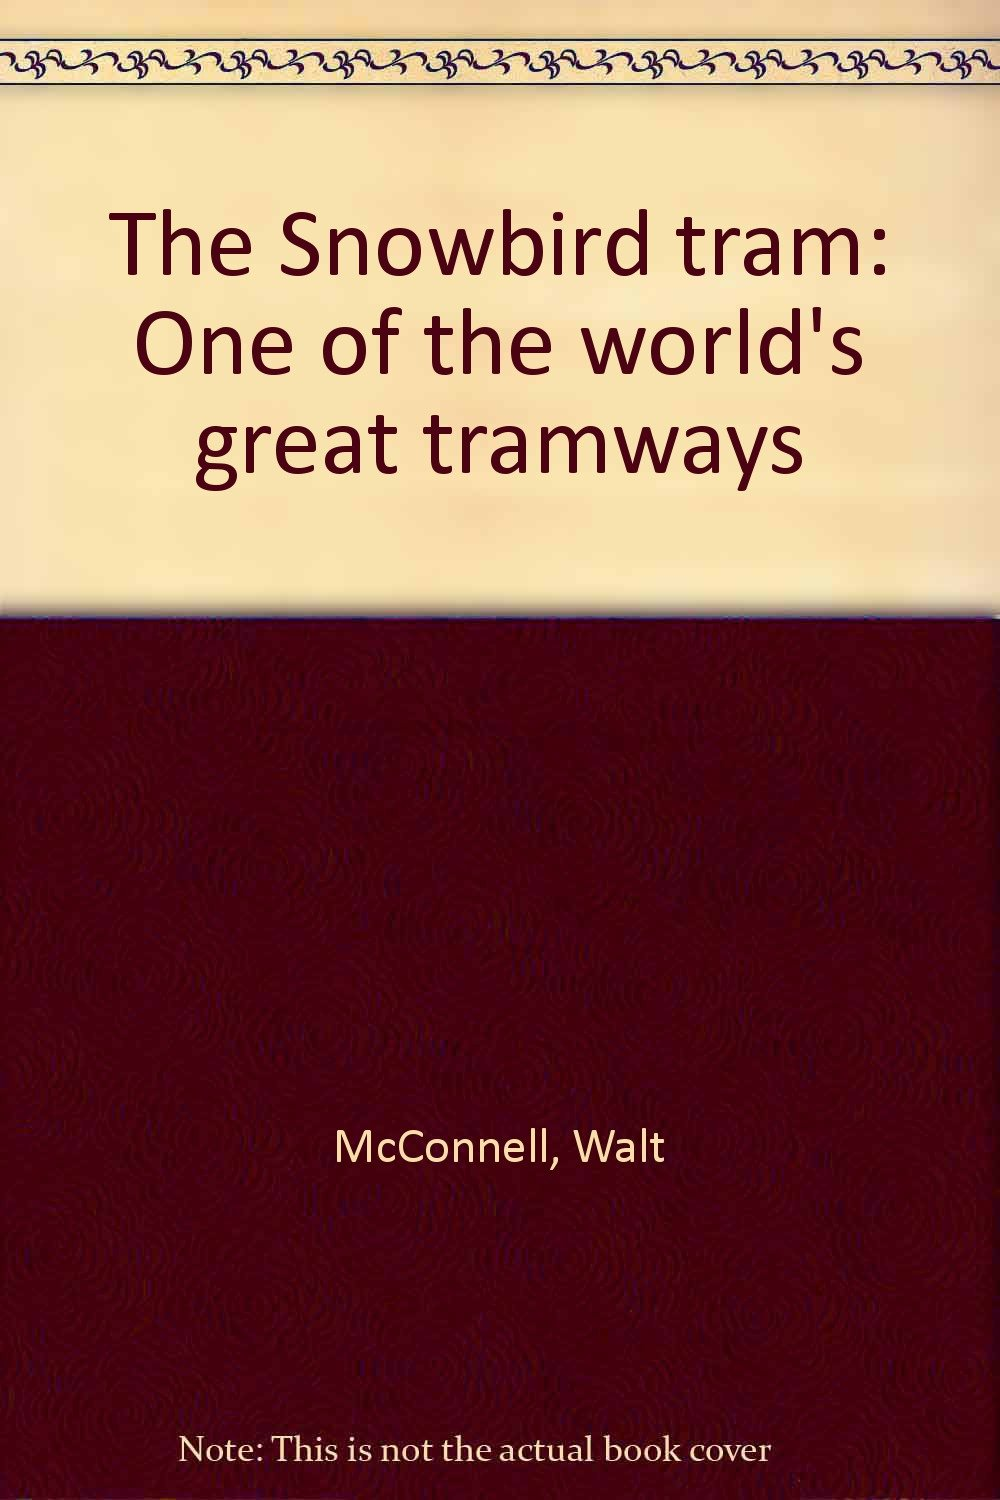 The Snowbird tram: One of the world's great tramways PDF